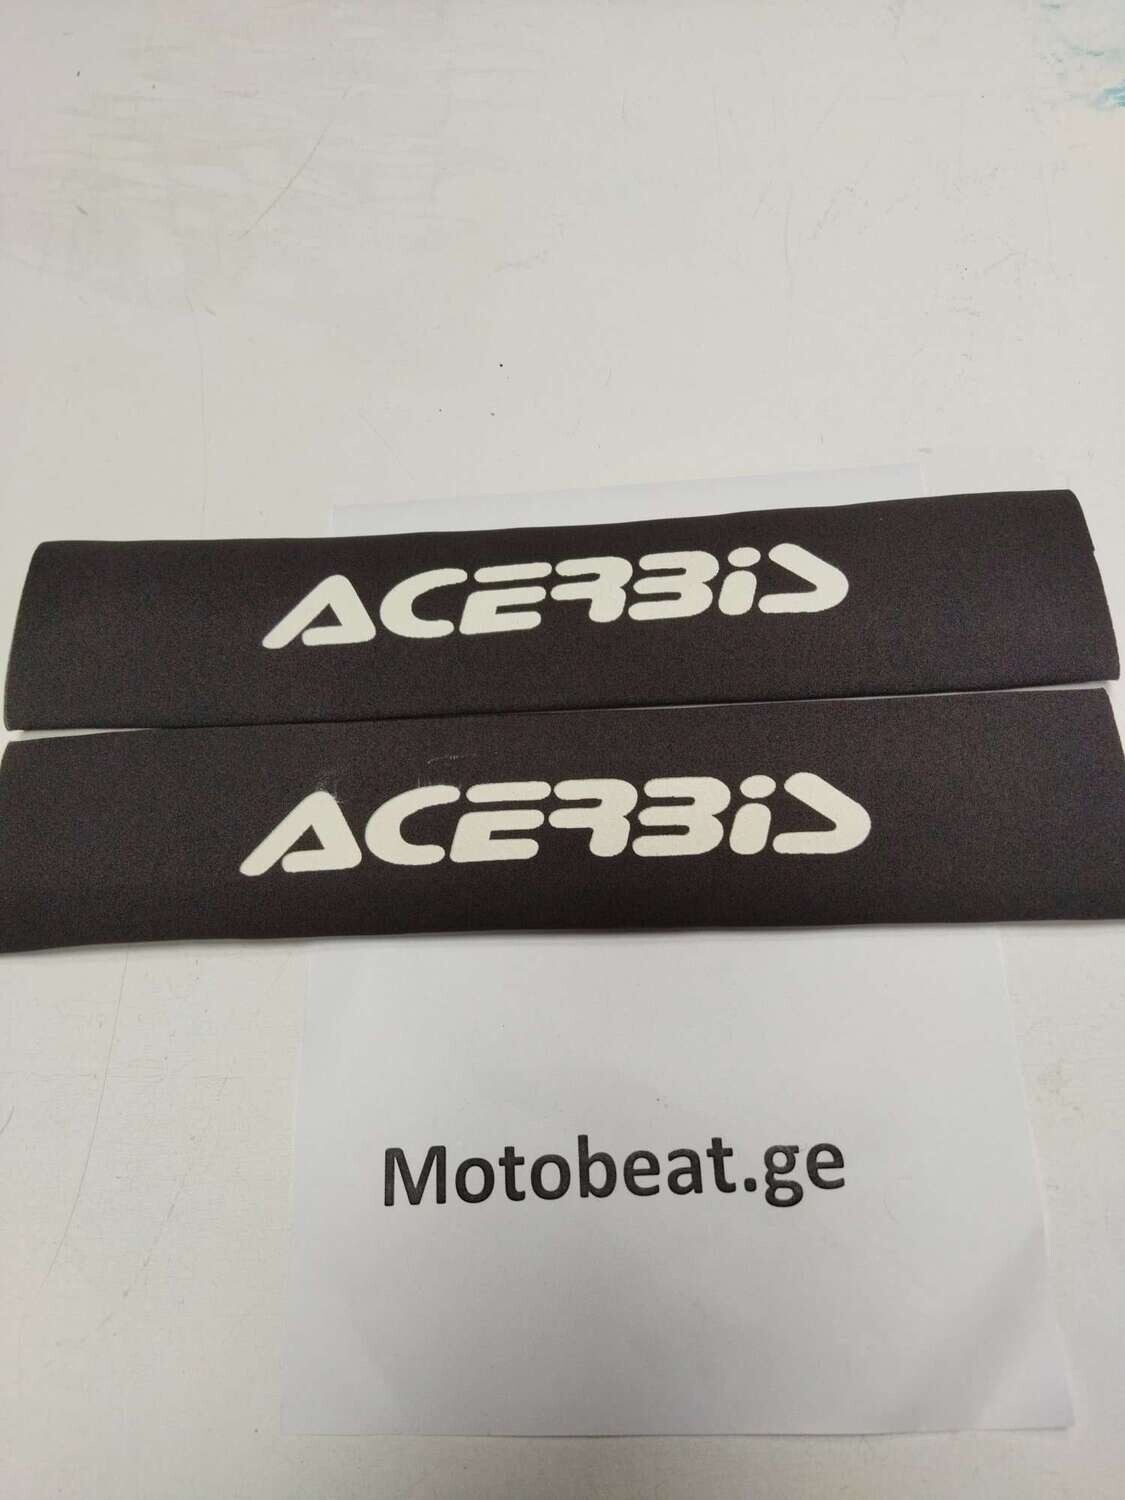 """FRONT FORK PROTECTION, """"ACERBID"""""""